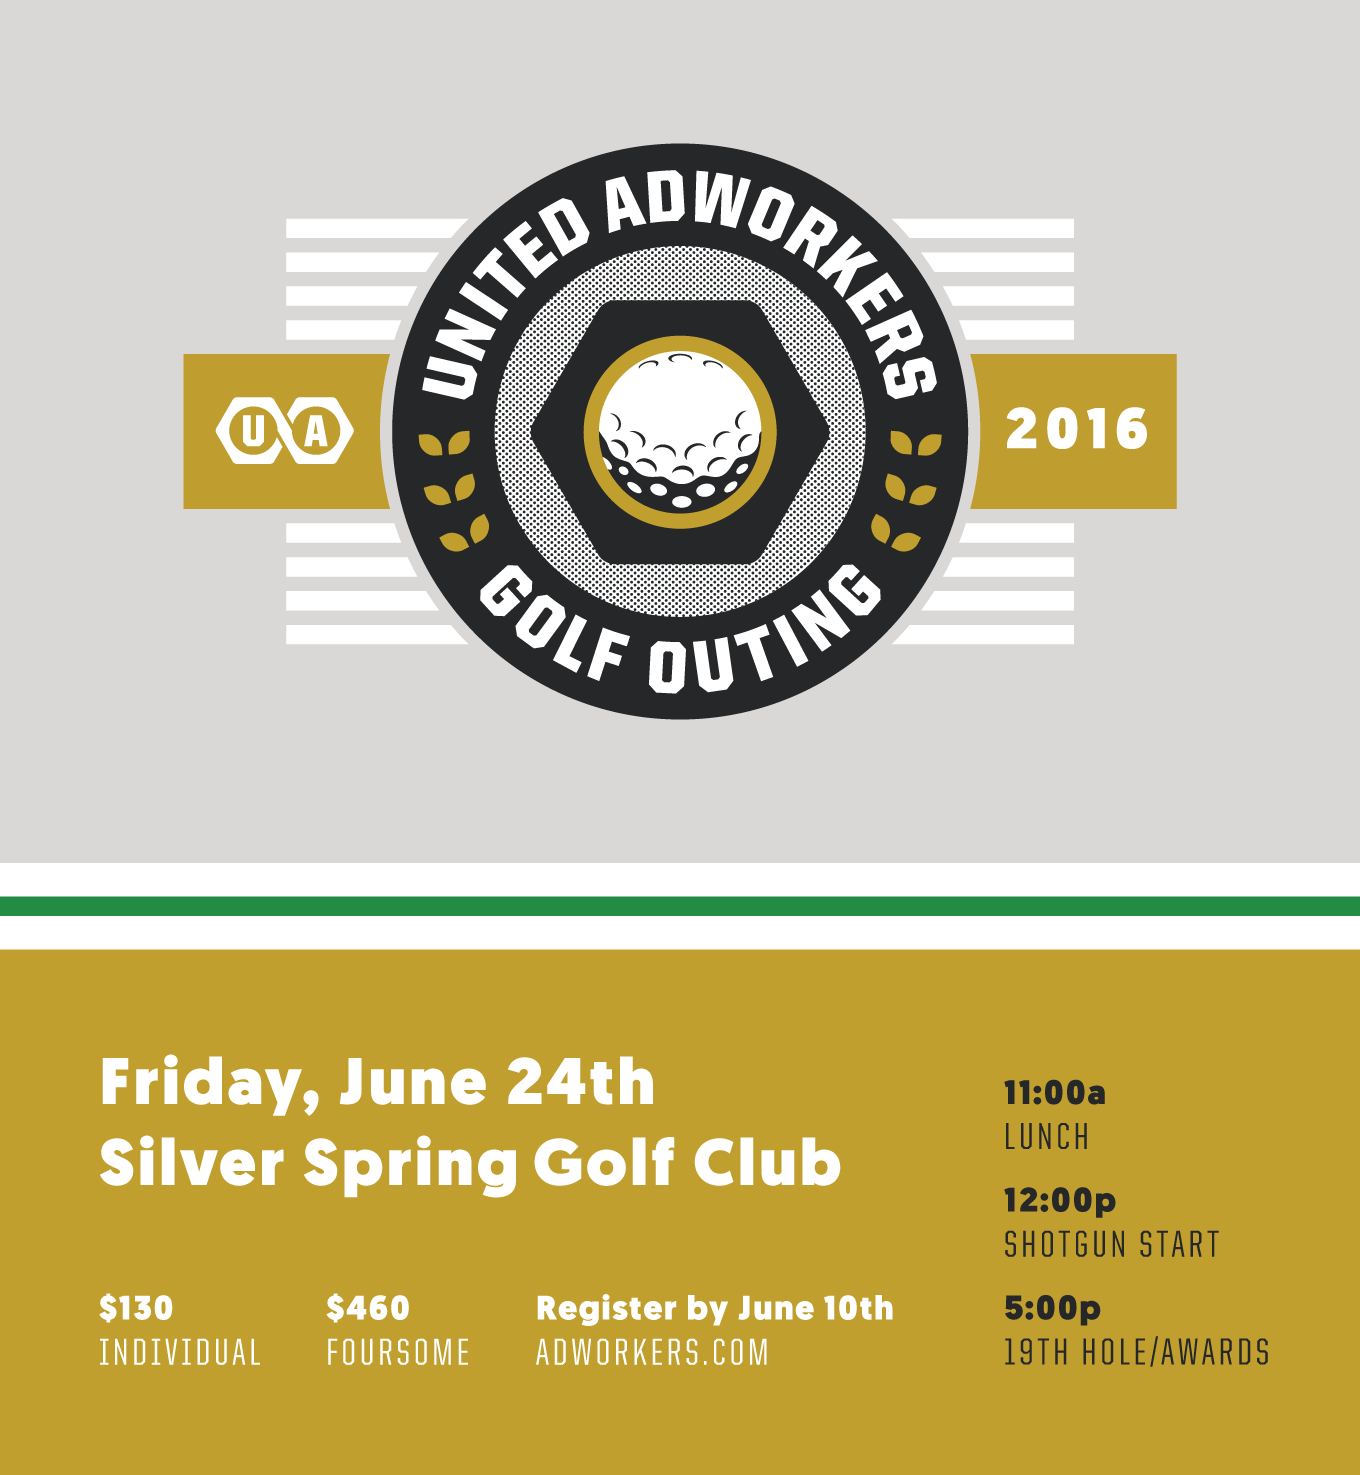 United Adworkers Golf Outing